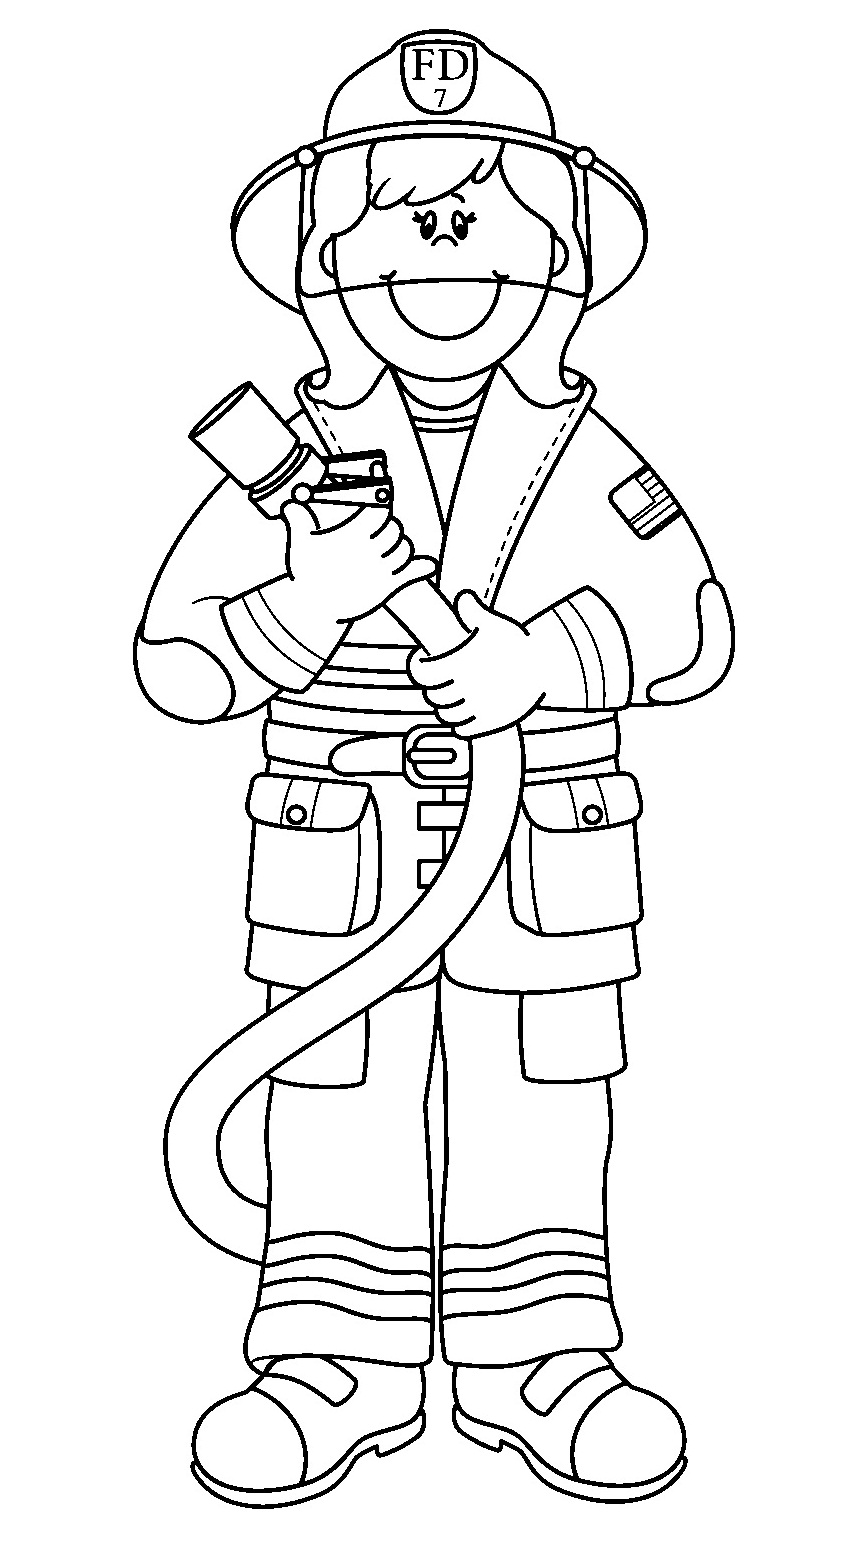 Coloring Page Printable Coloring Pages For Kids Part 899